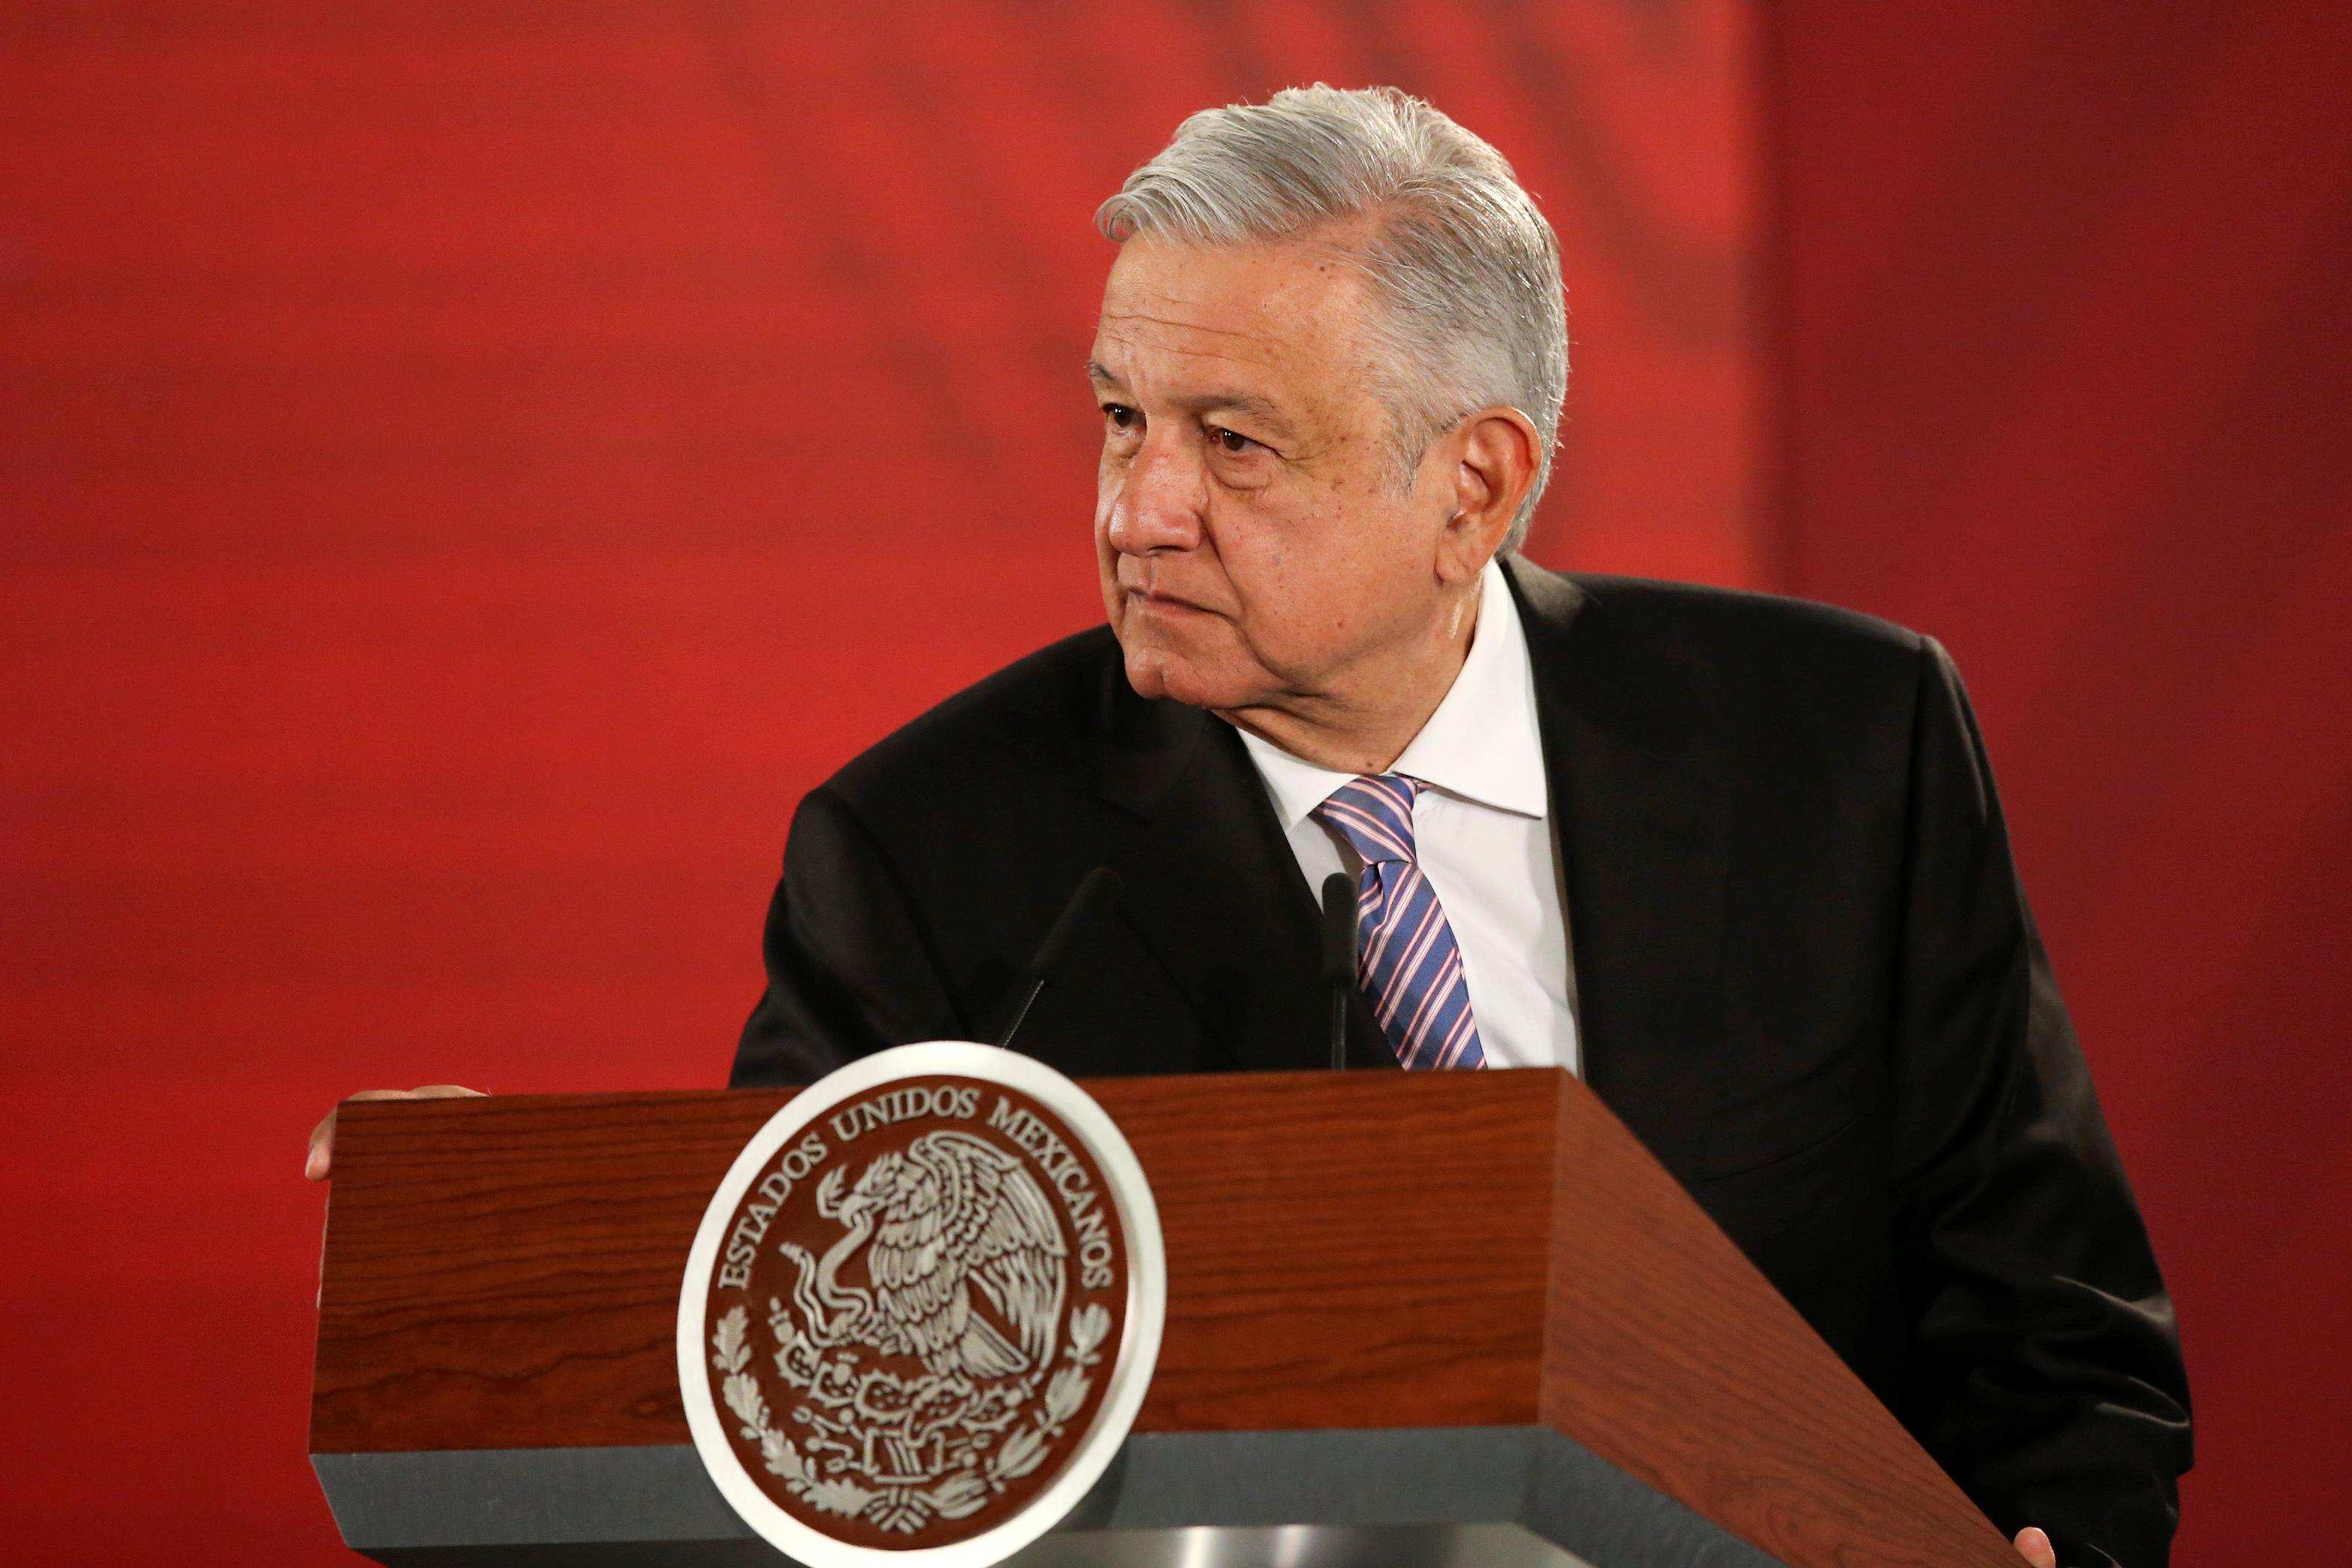 Mexico asks Pelosi to act on trade deal, business groups wary